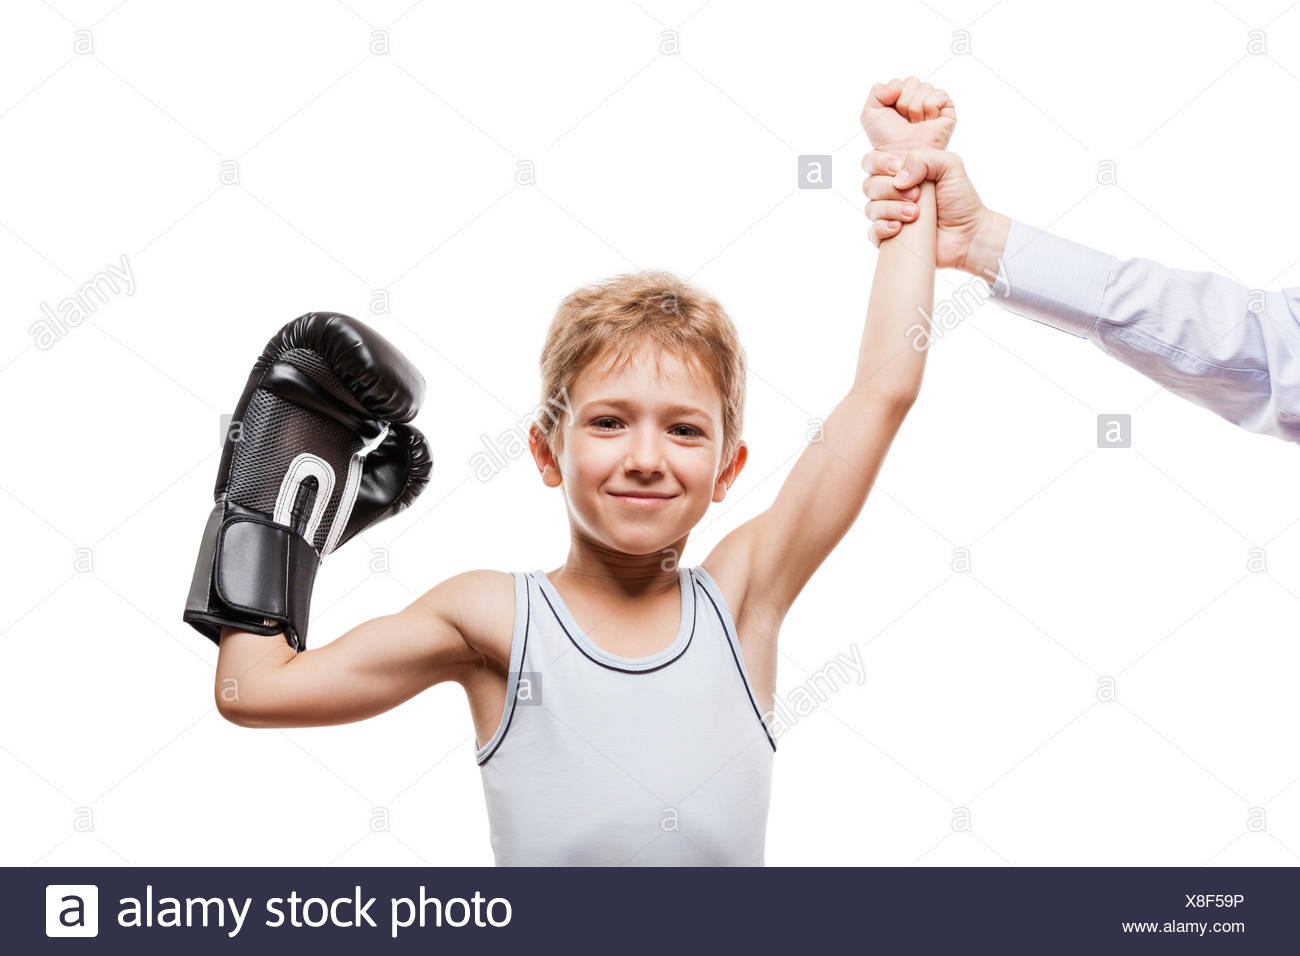 Smiling boxing champion child boy gesturing for vi - Stock Image